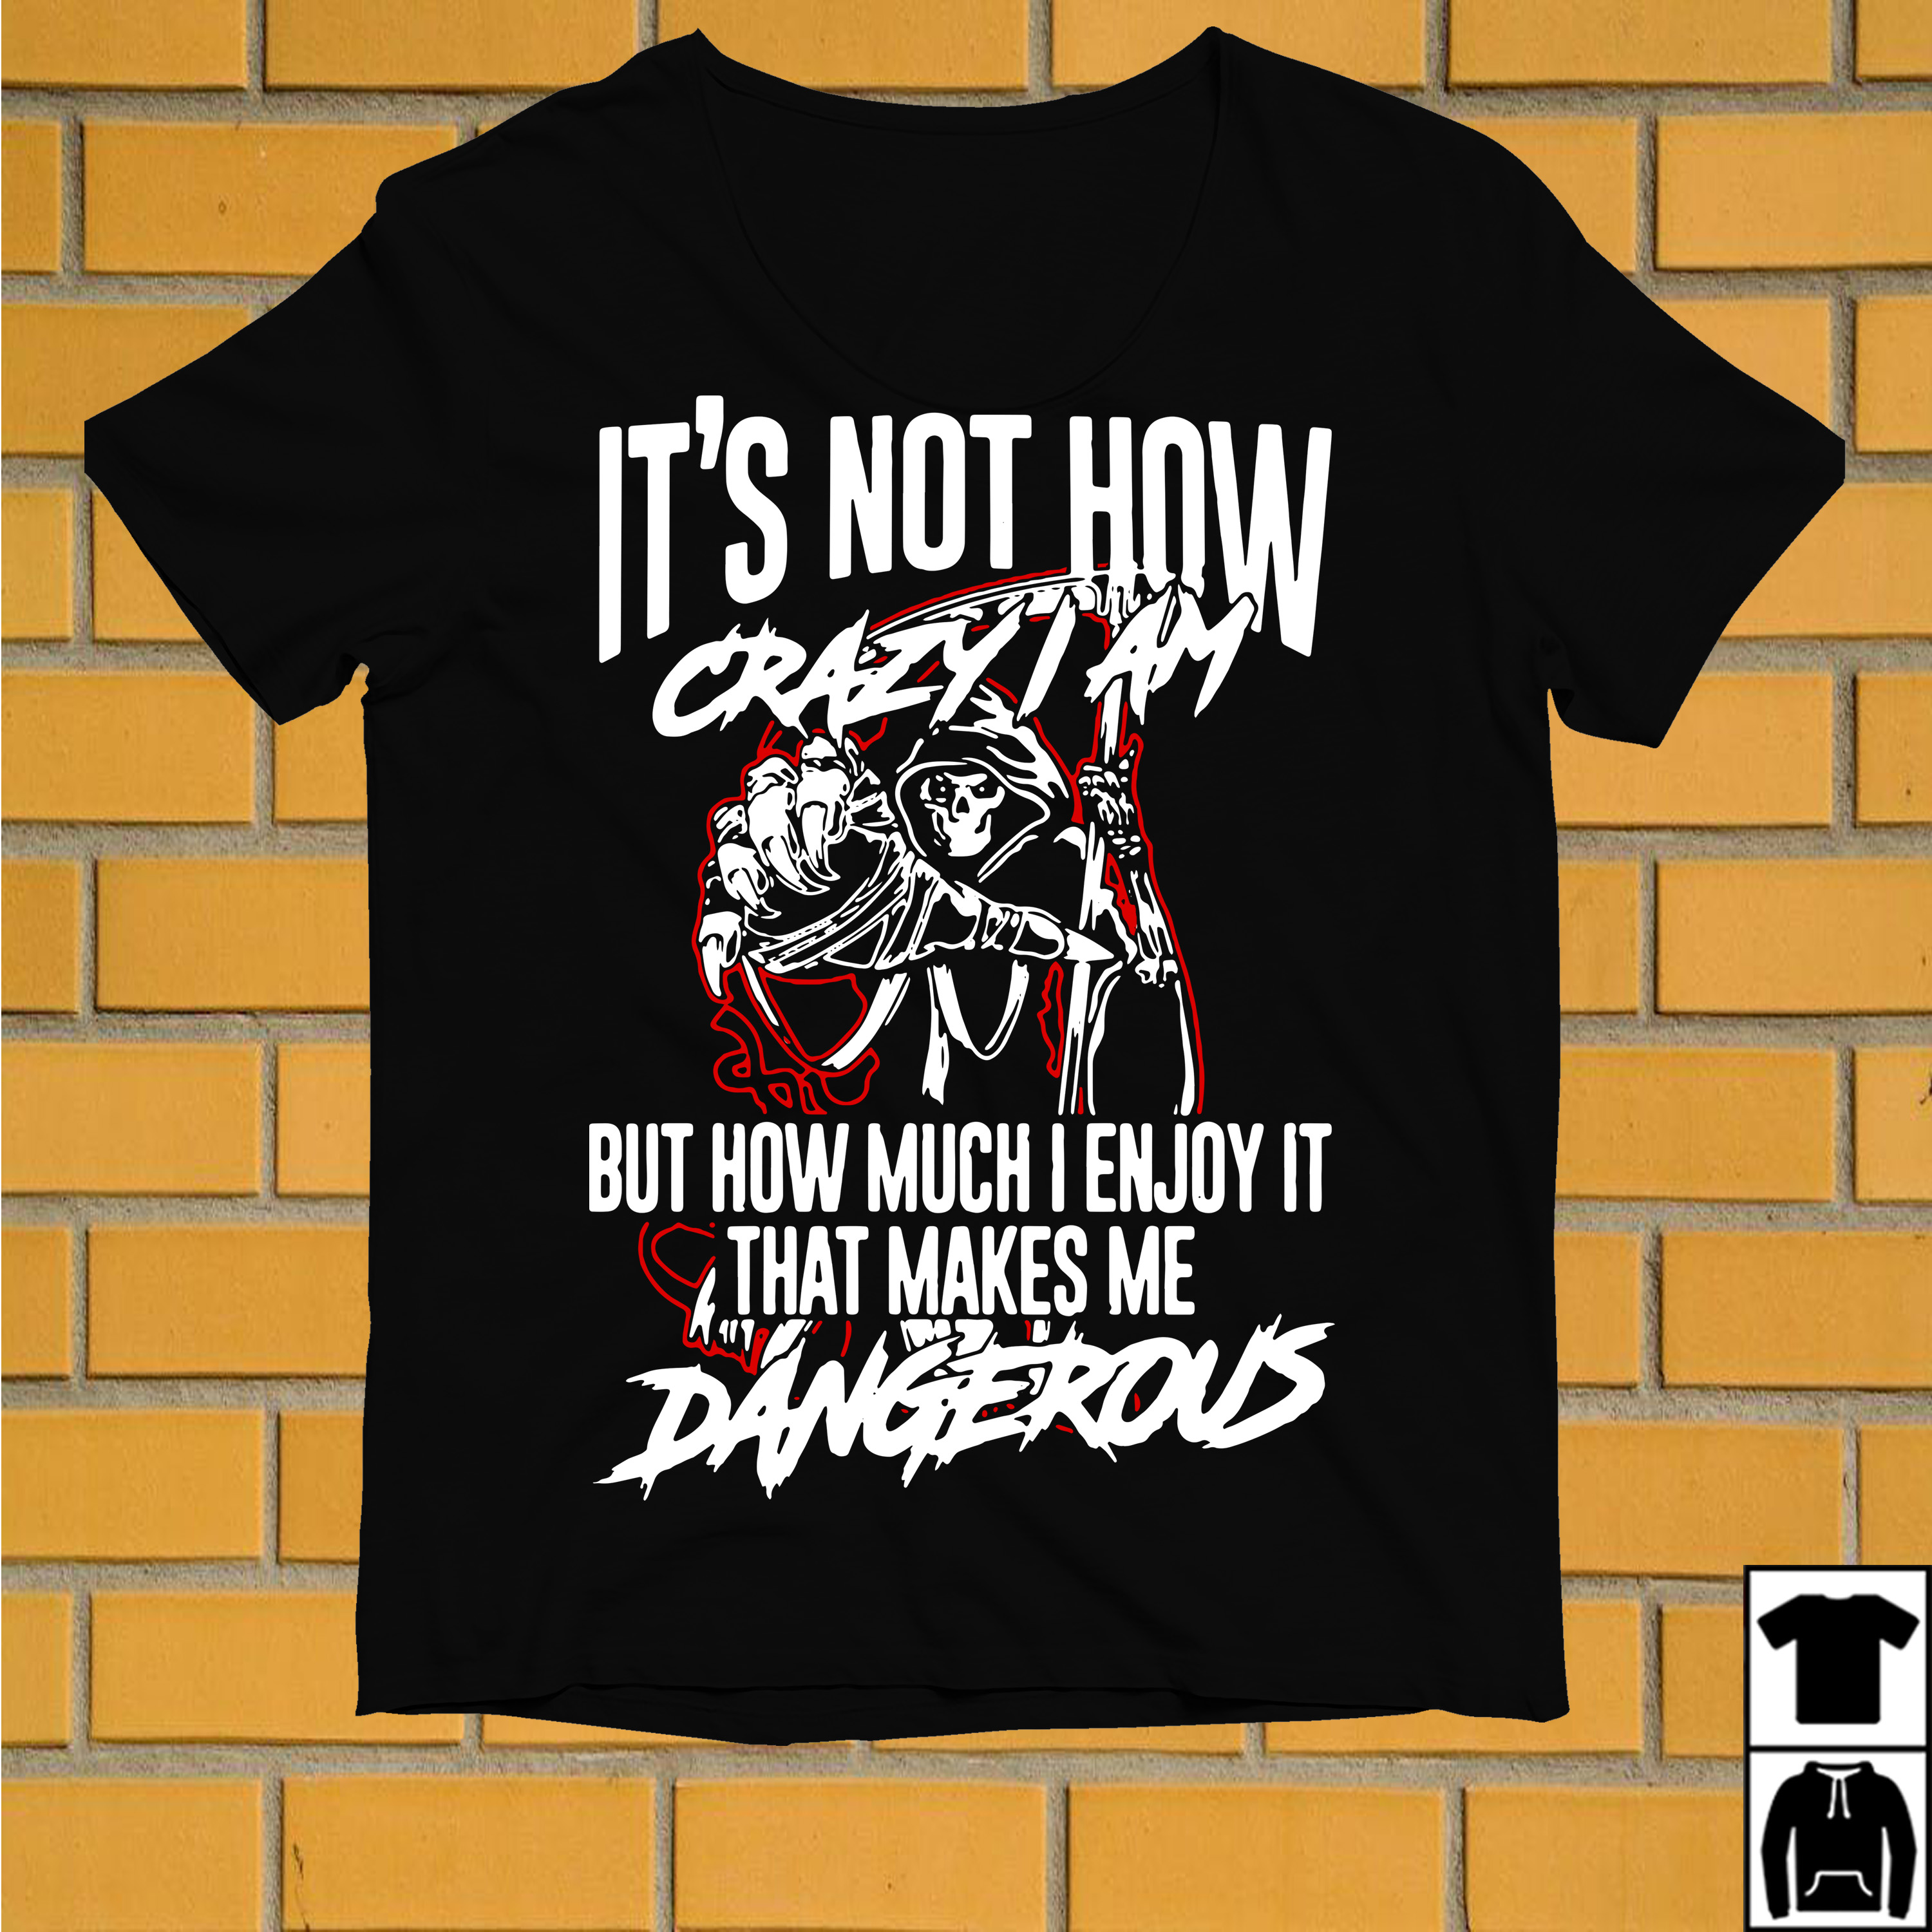 It's not how crazy I am but how much I enjoy it that makes me dangerous shirt